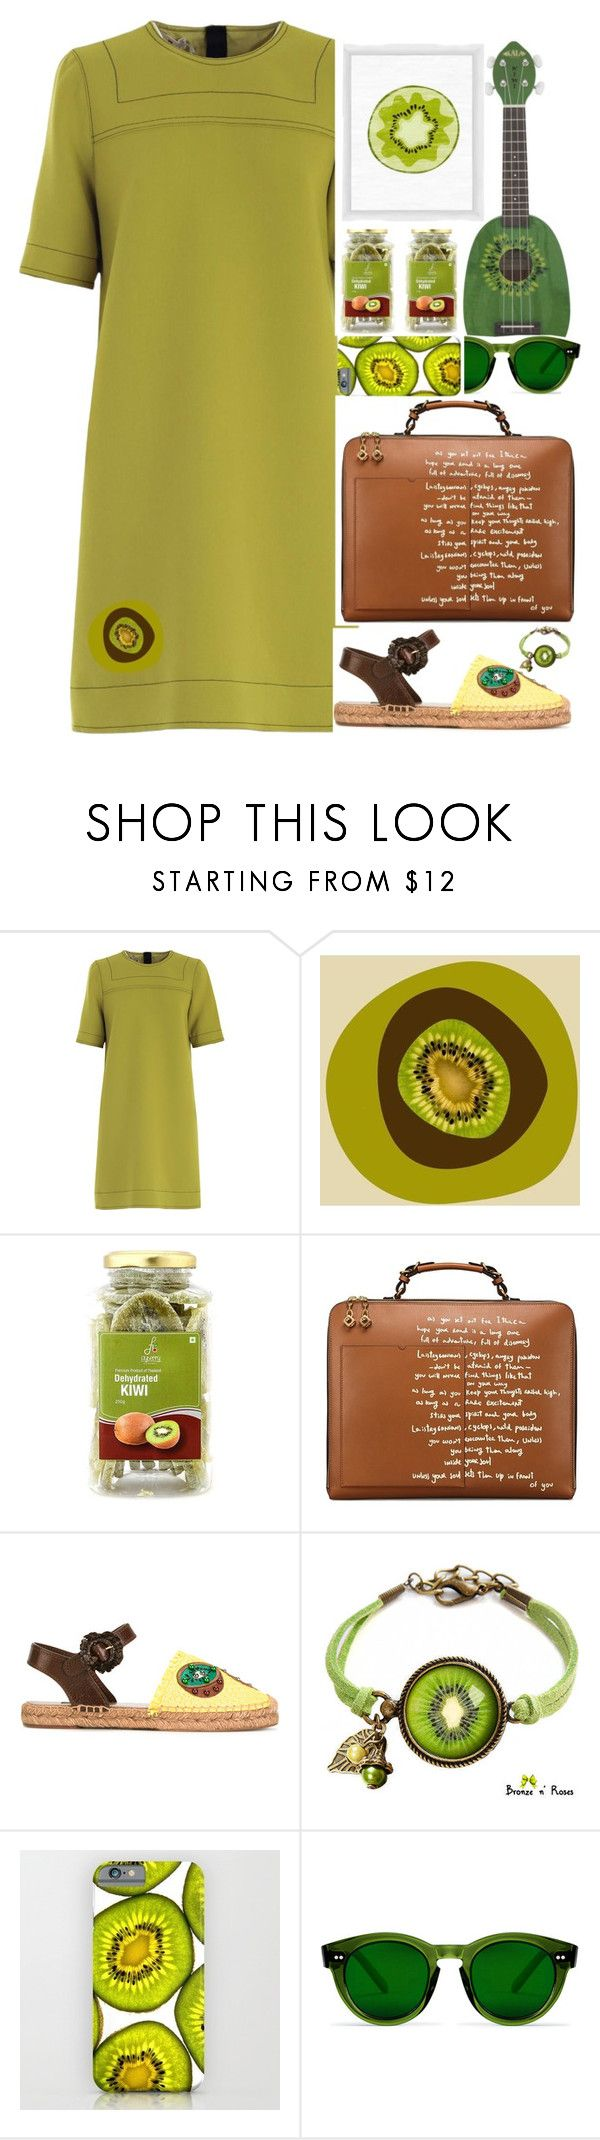 """2259"" by mykatty091 ❤ liked on Polyvore featuring Marni, Marmont Hill, Tory Burch, Dolce&Gabbana, PTM Images, GREEN and kiwi"